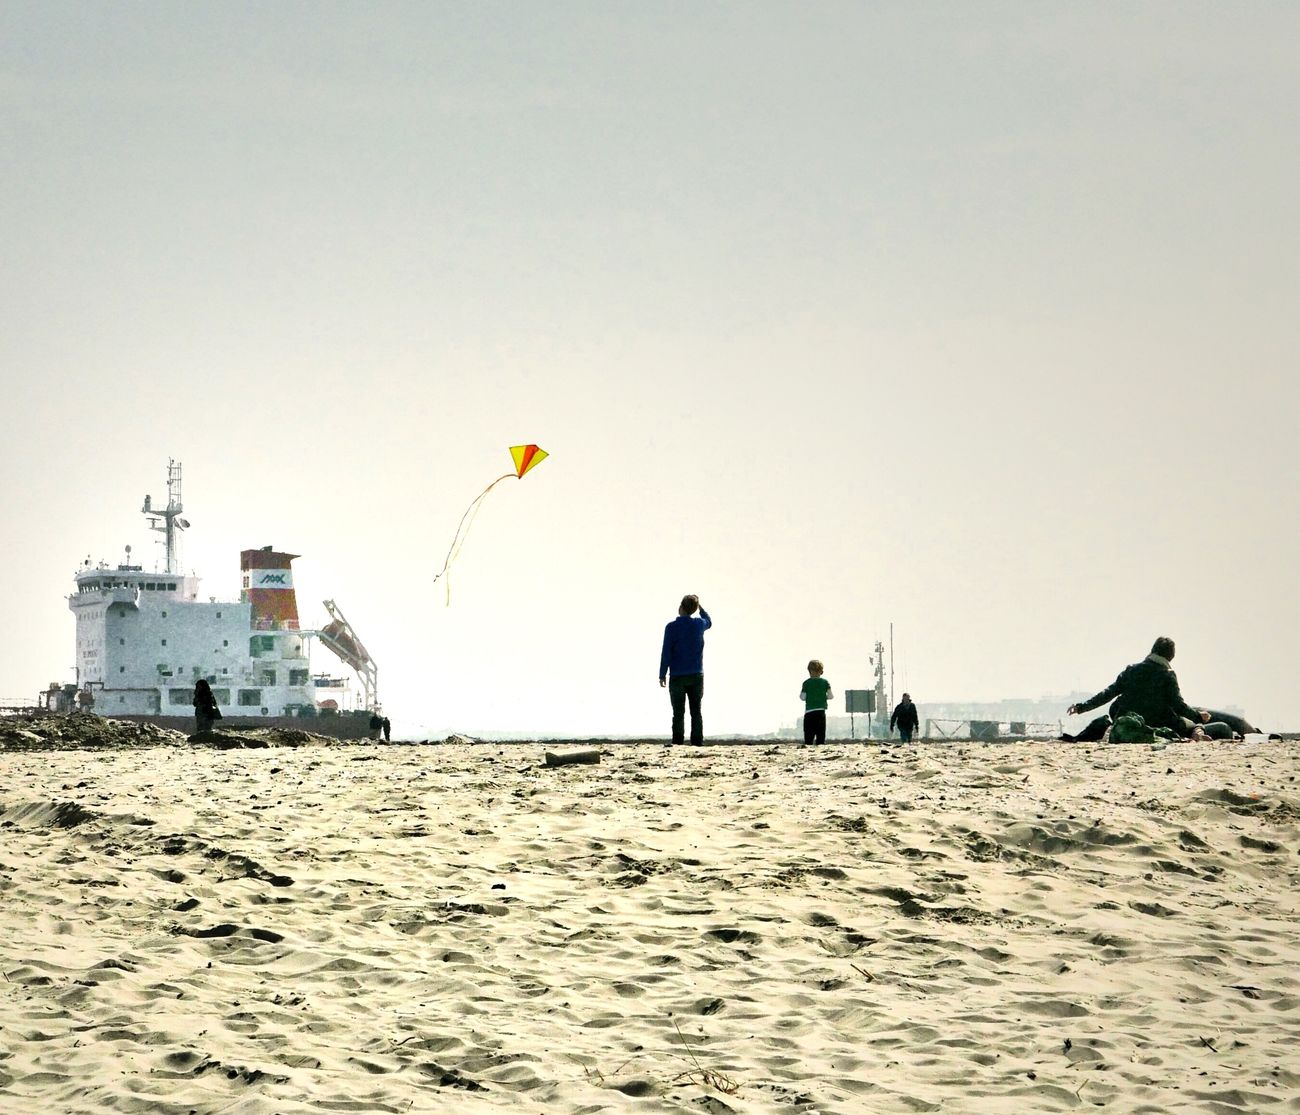 I truly love this shot. Contrast Beachphotography Flying A Kite Kites Relaxing At The Beach Ship Playing In The Sand Learning To Fly OpenEdit